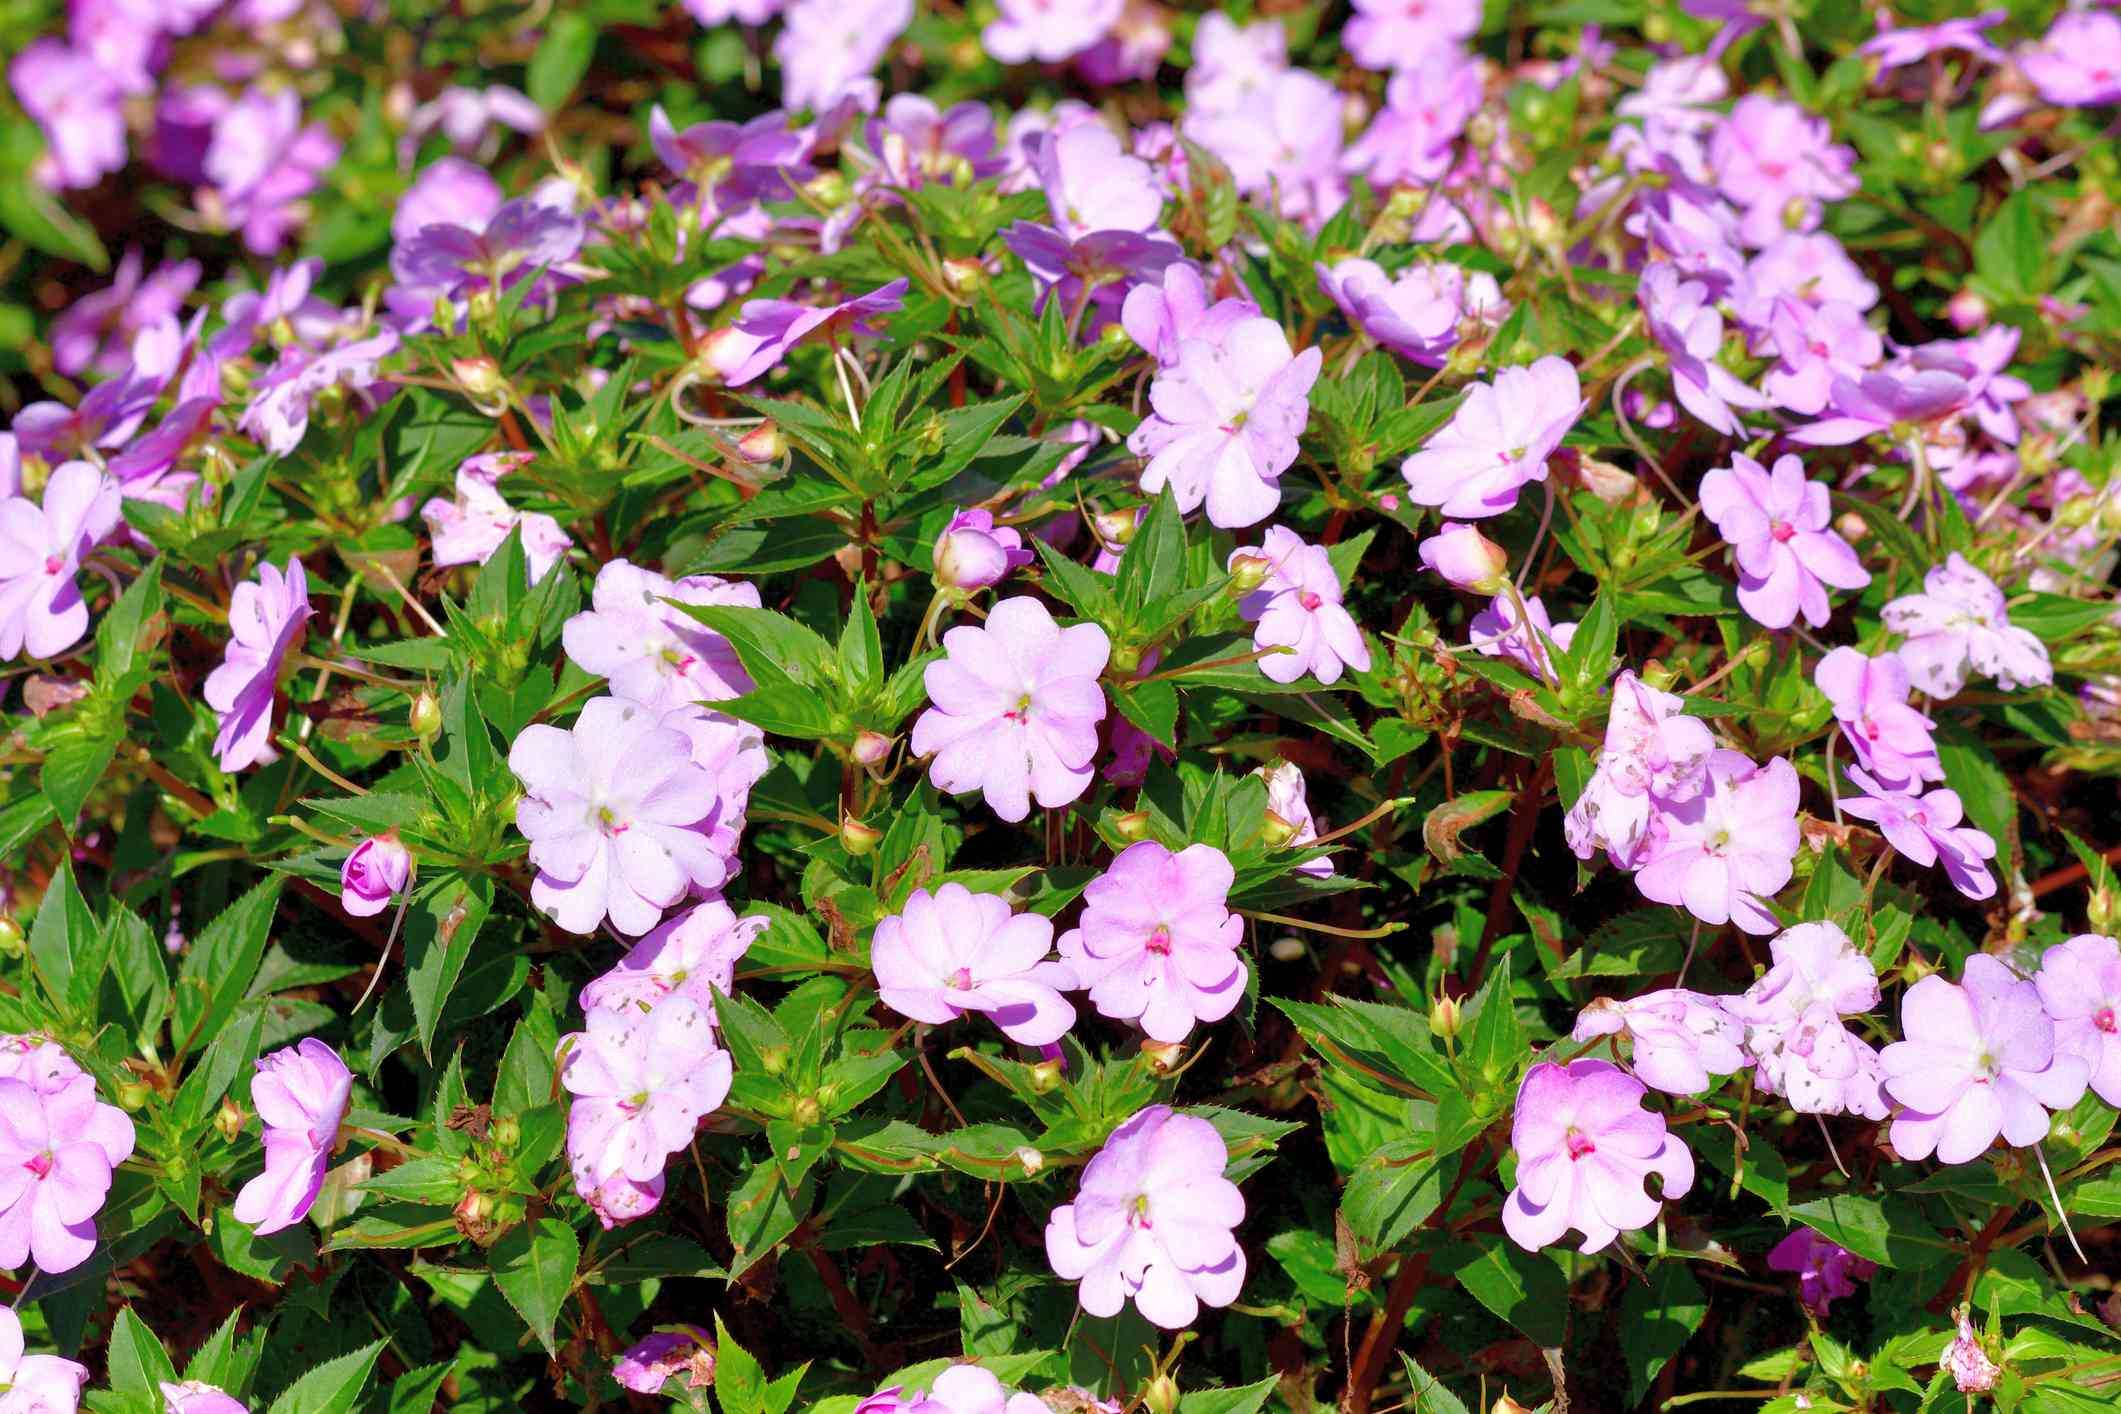 SunPatiens are available in a wide range of colors